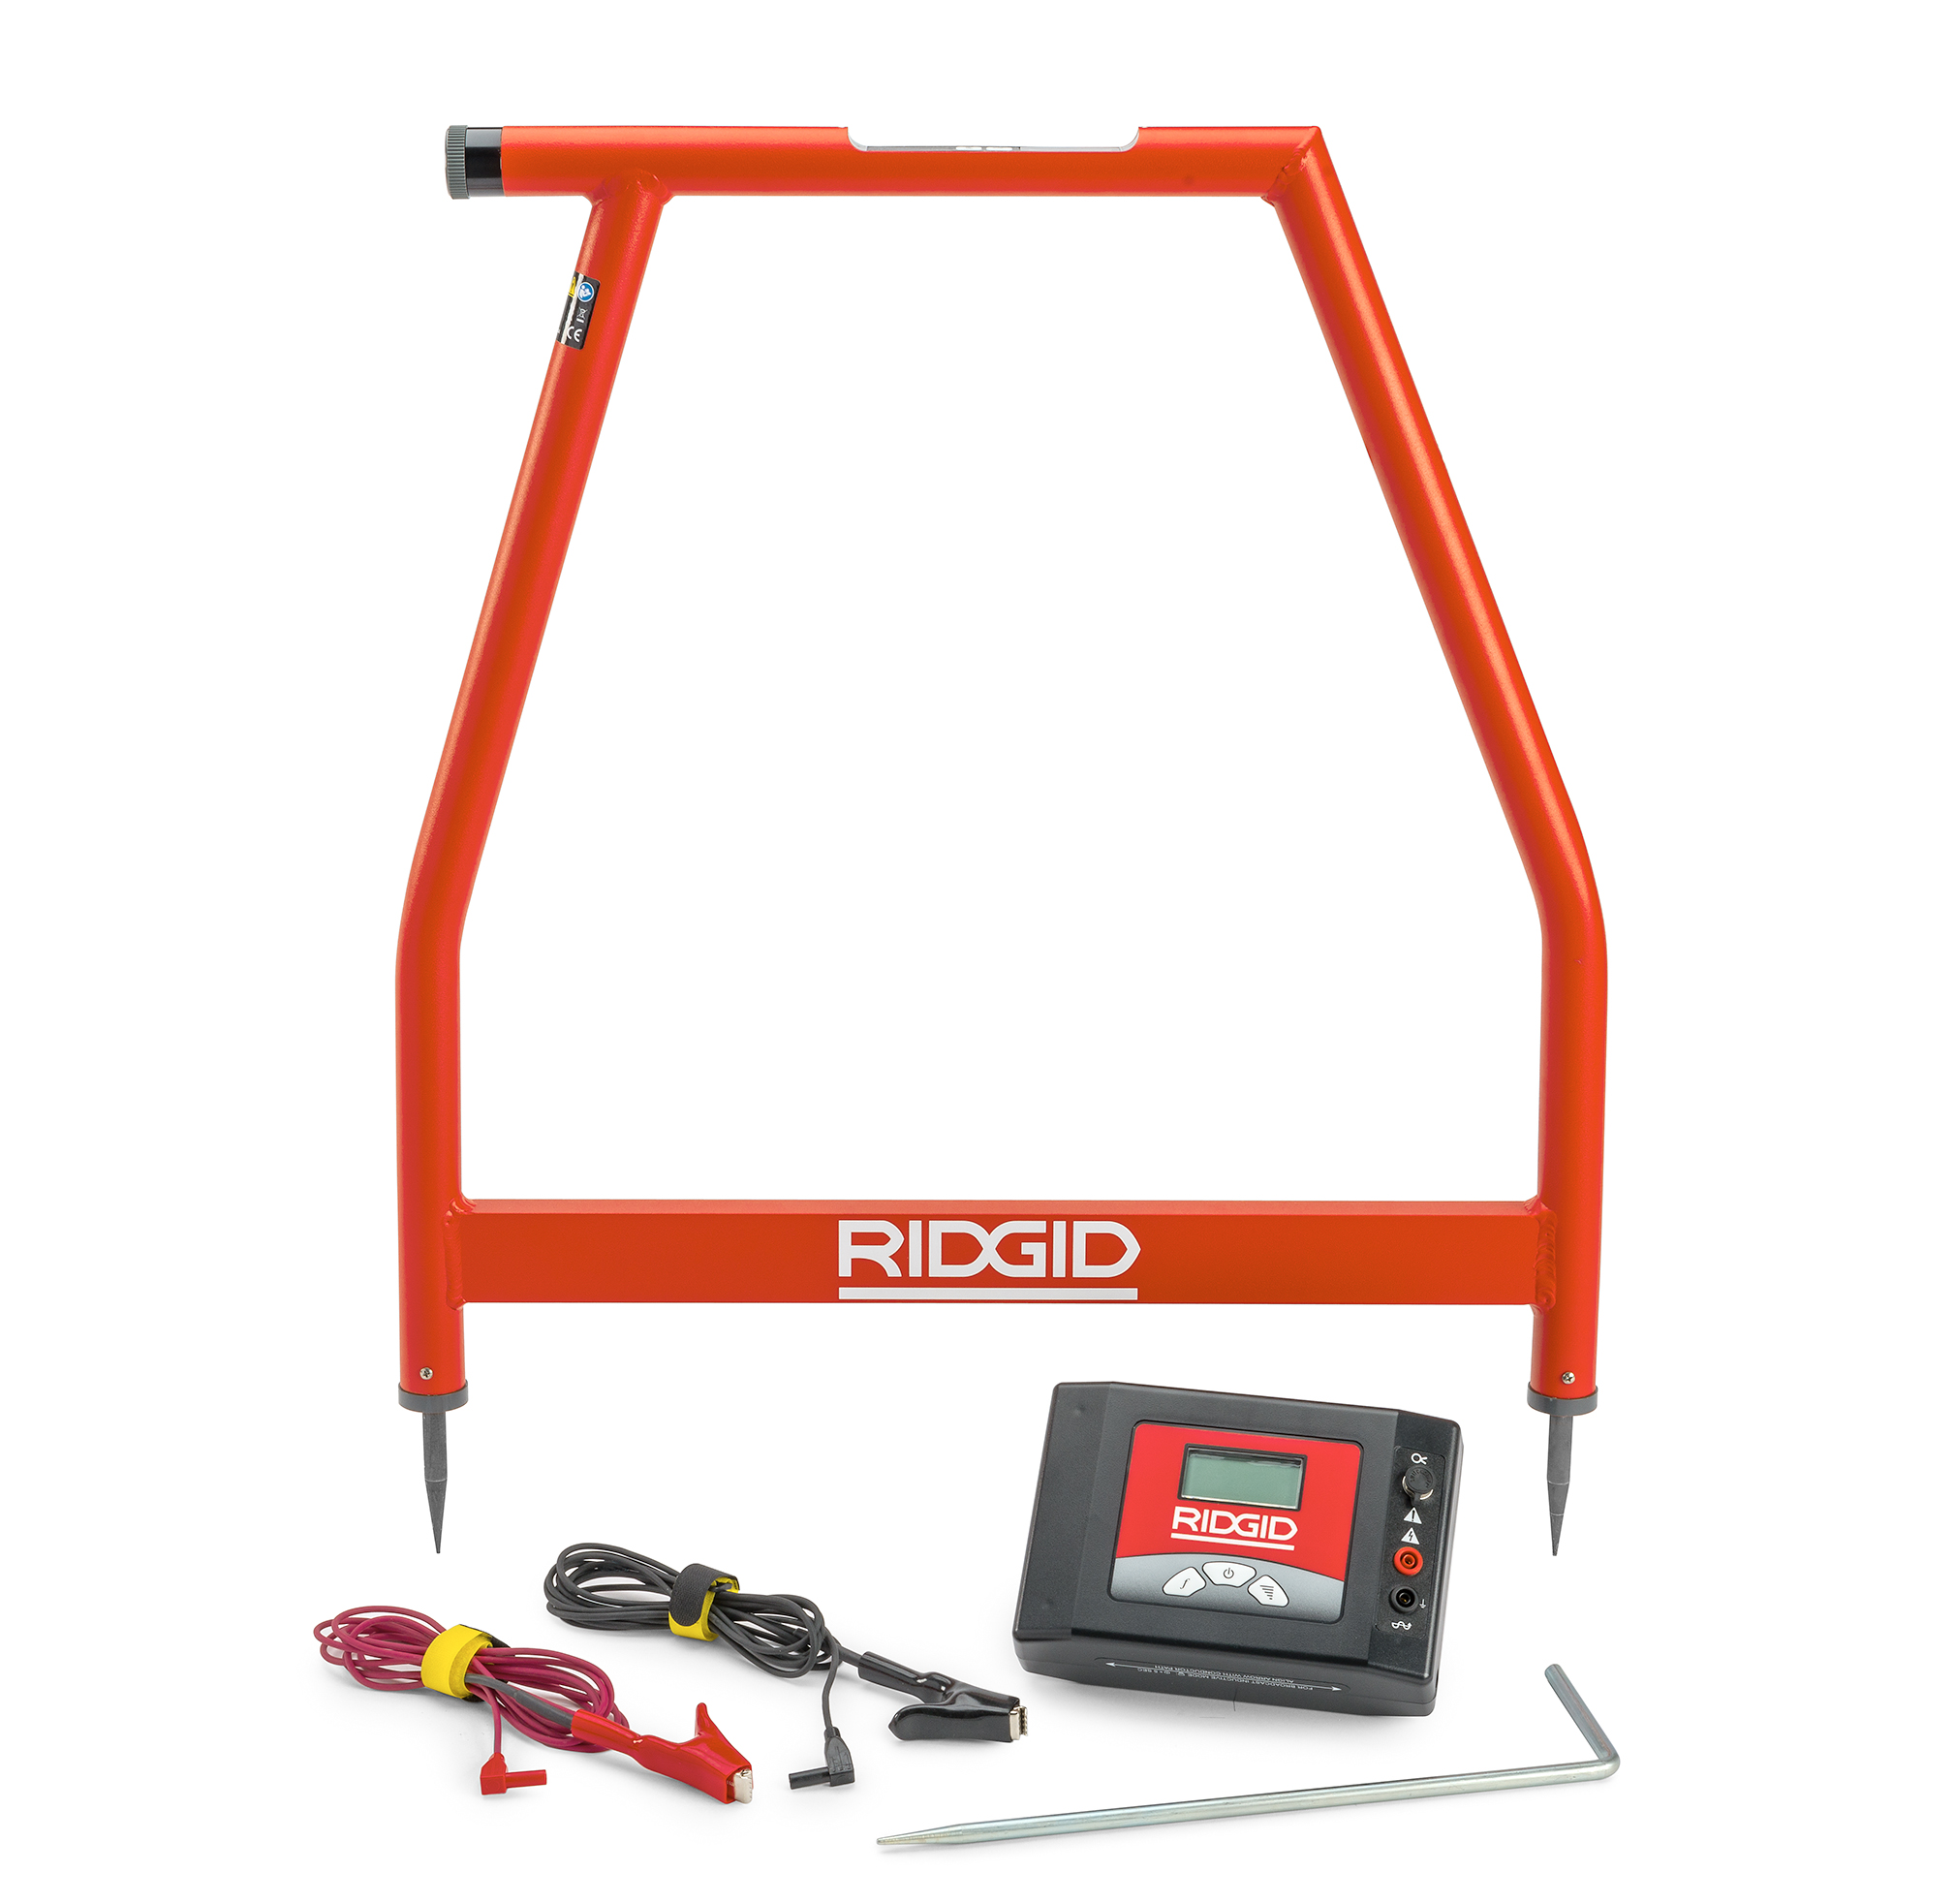 RIDGID 56613 - A-Frame Underground Cable Fault Locator and Receiver